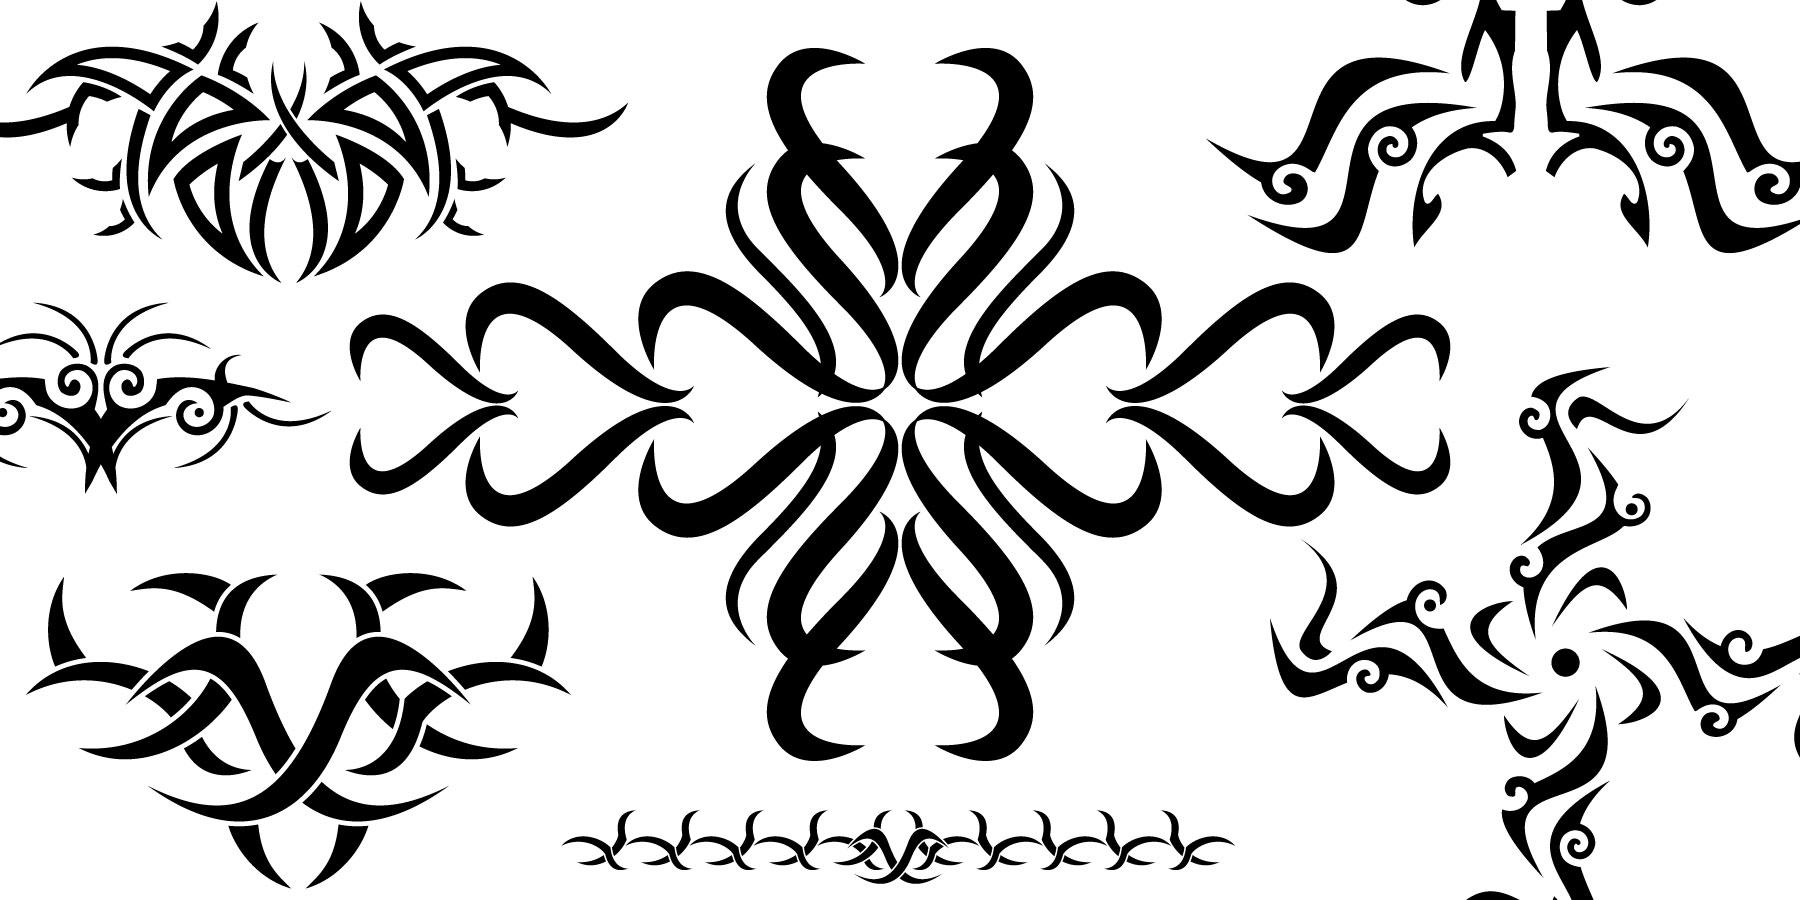 Line Drawing Vector Free : Free vector line art clipart download